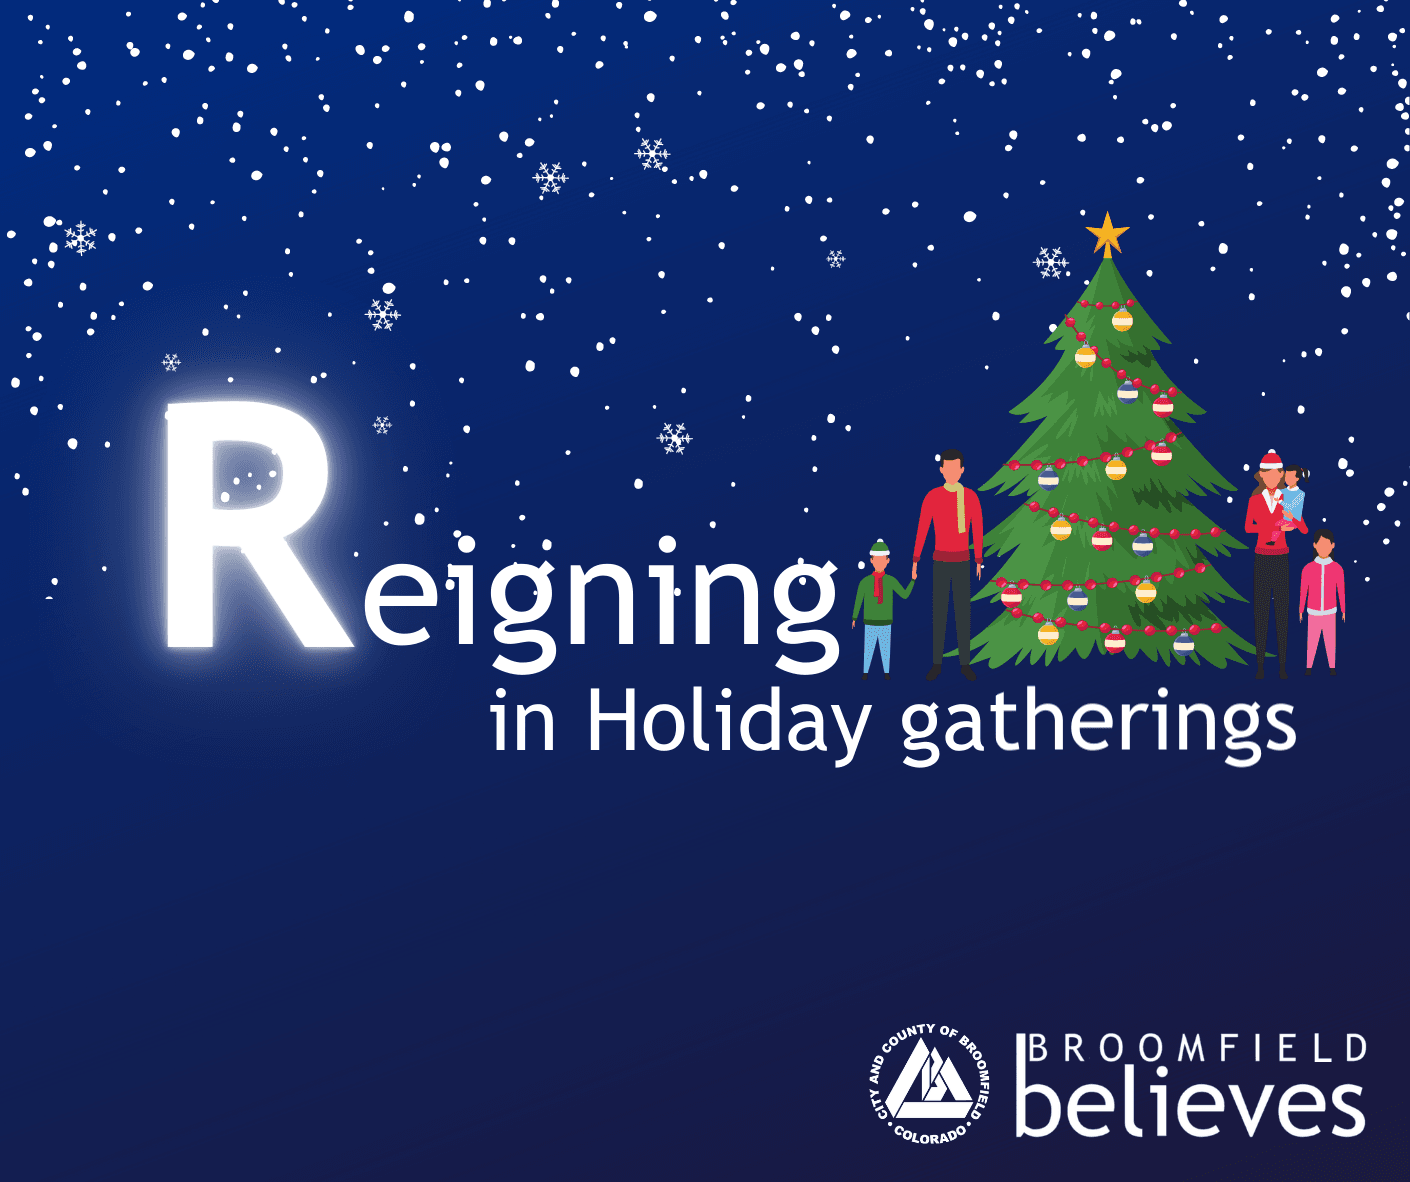 Broomfield Believes_Reigning In Holiday Gatherings